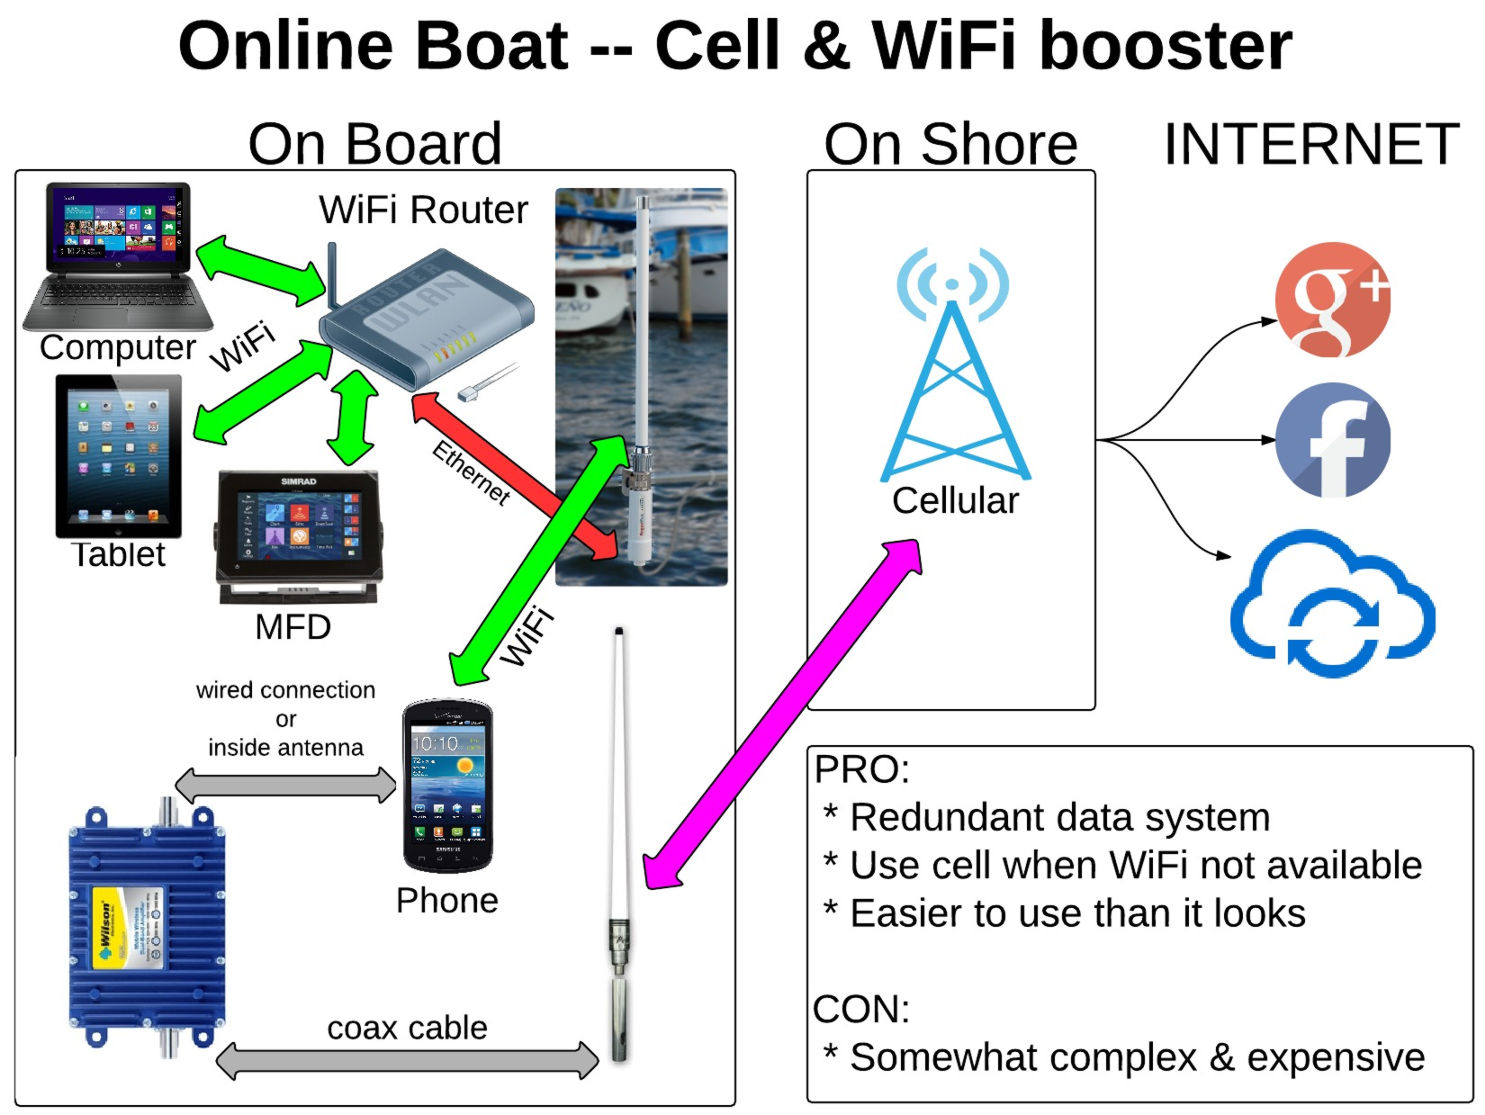 cellular phone tower signal diagram 1985 honda spree wiring panbo the marine electronics hub onboard wifi and cell